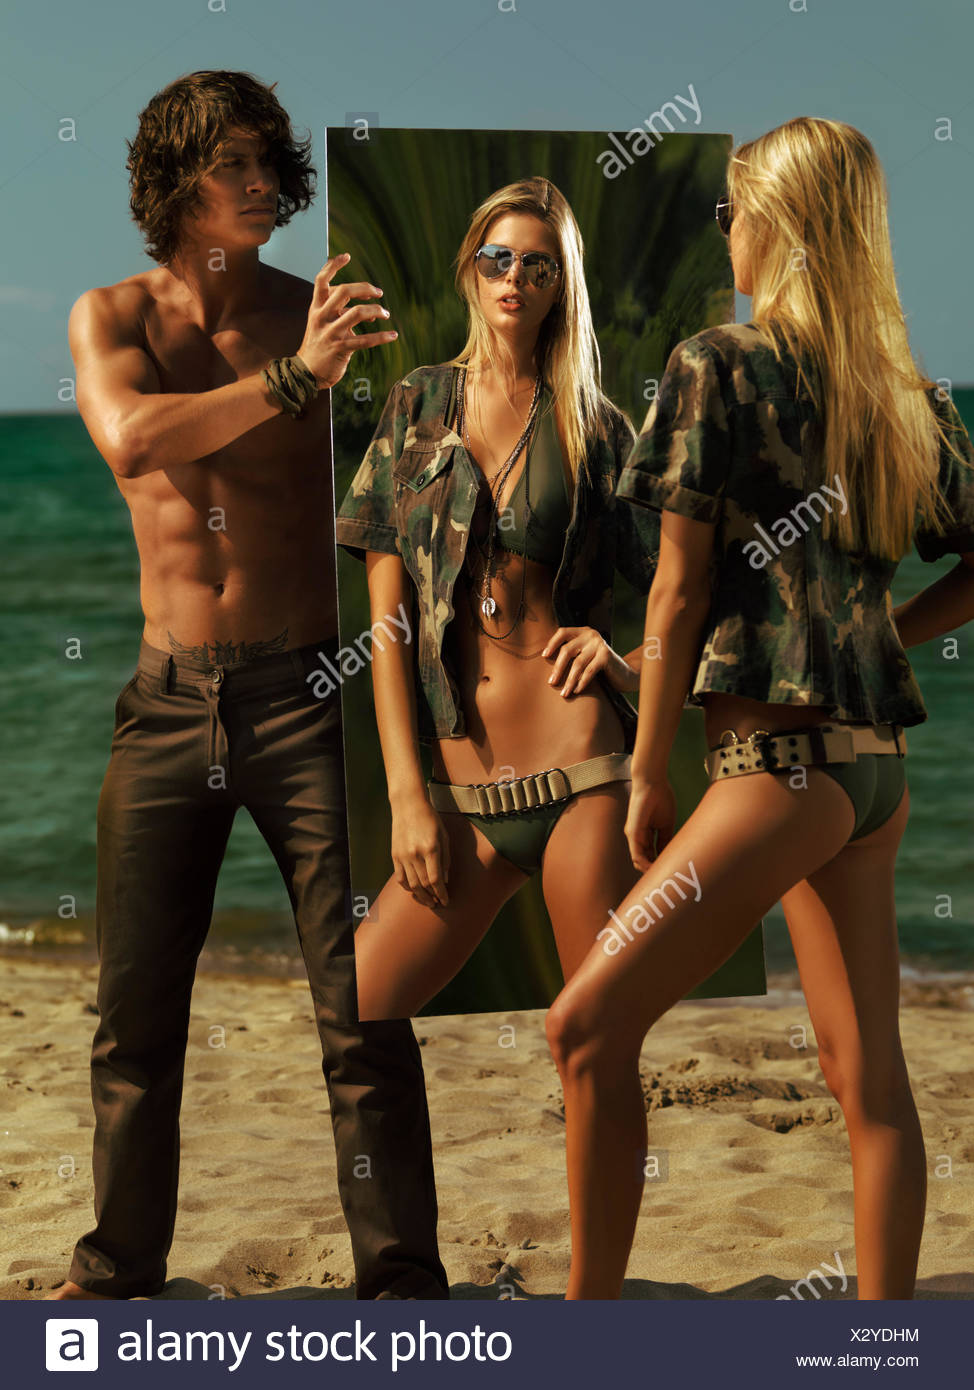 Woman wearing a military-style outfit watching herself in a mirror held by a man, on the beach, Toronto, Ontario Province - Stock Image